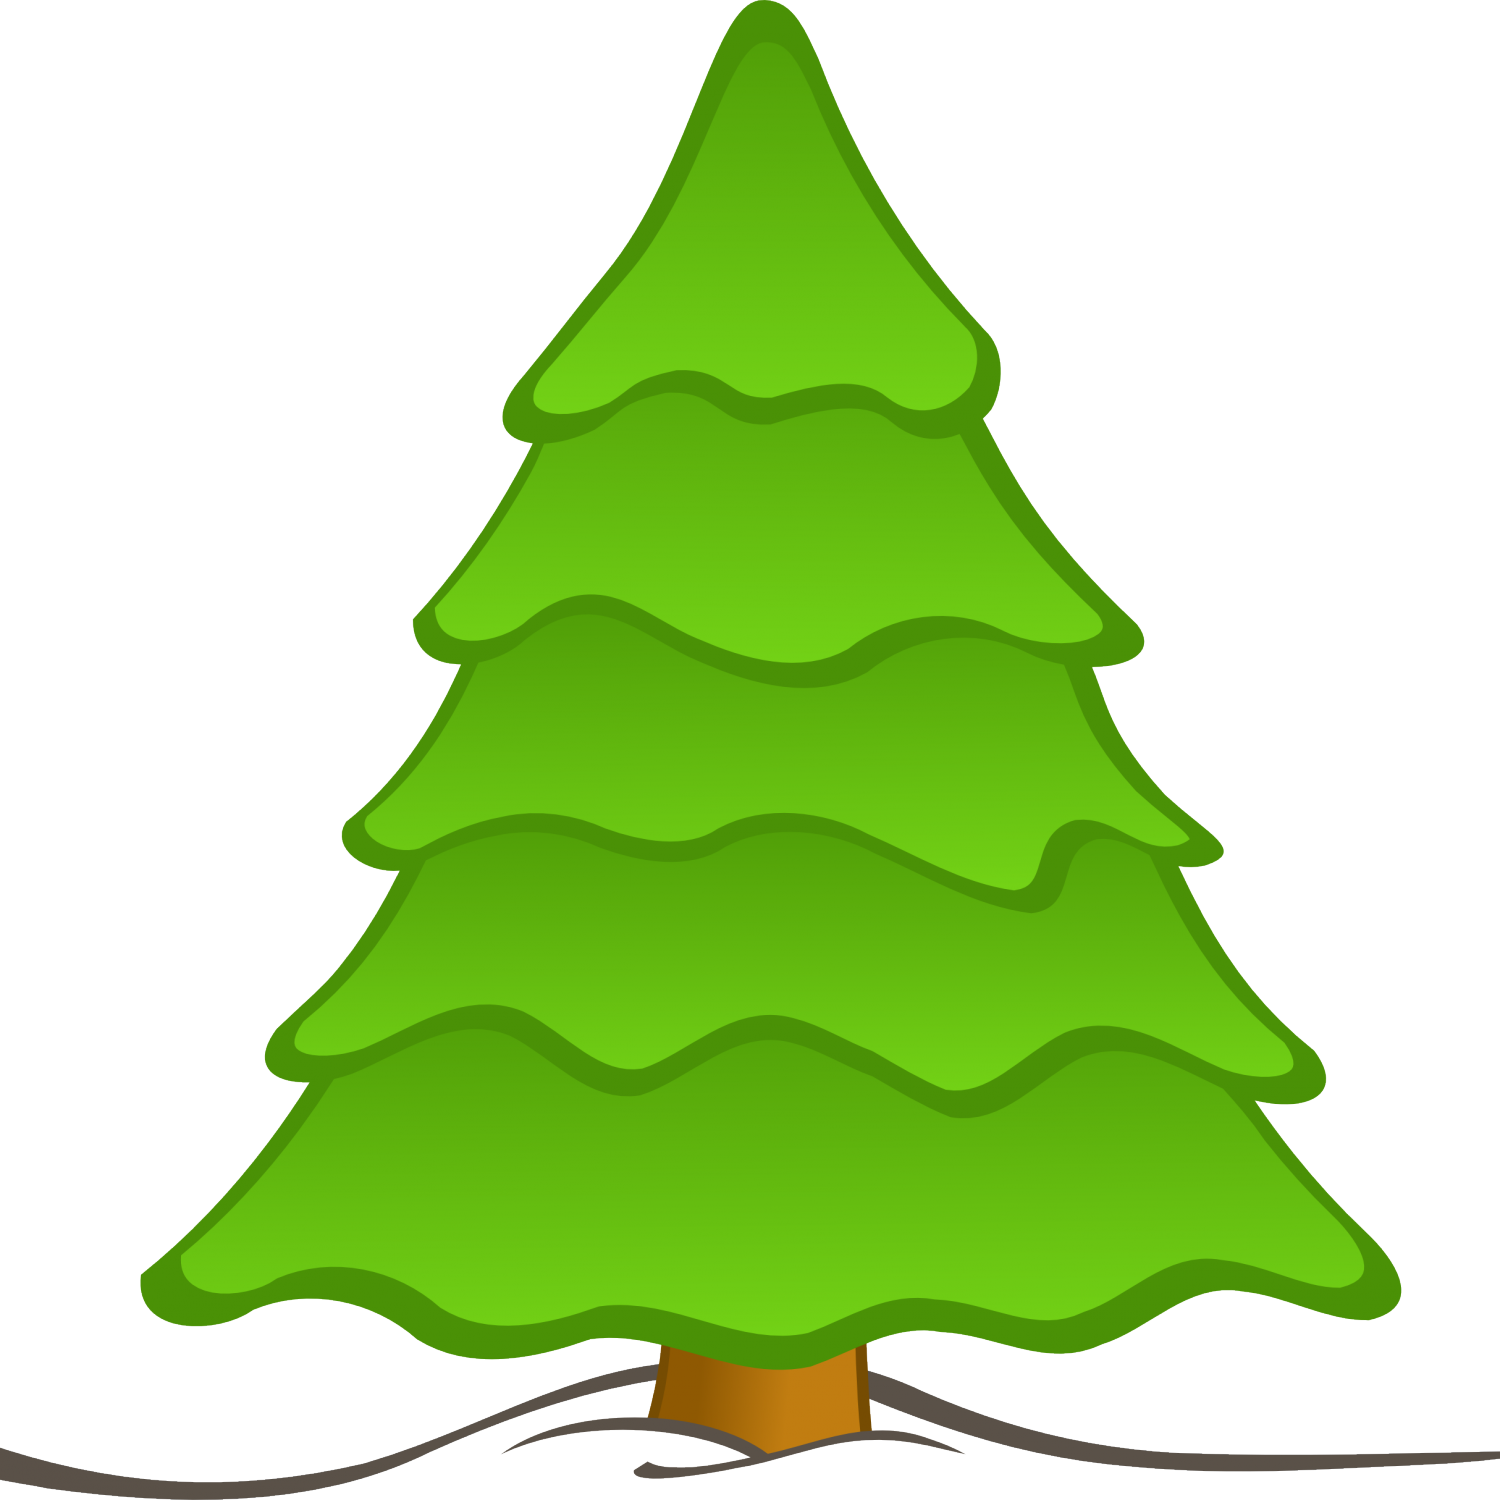 1500x1500 Tree Cartoon Png Cartoon Christmas Tree, Cartoon Christmas Tree